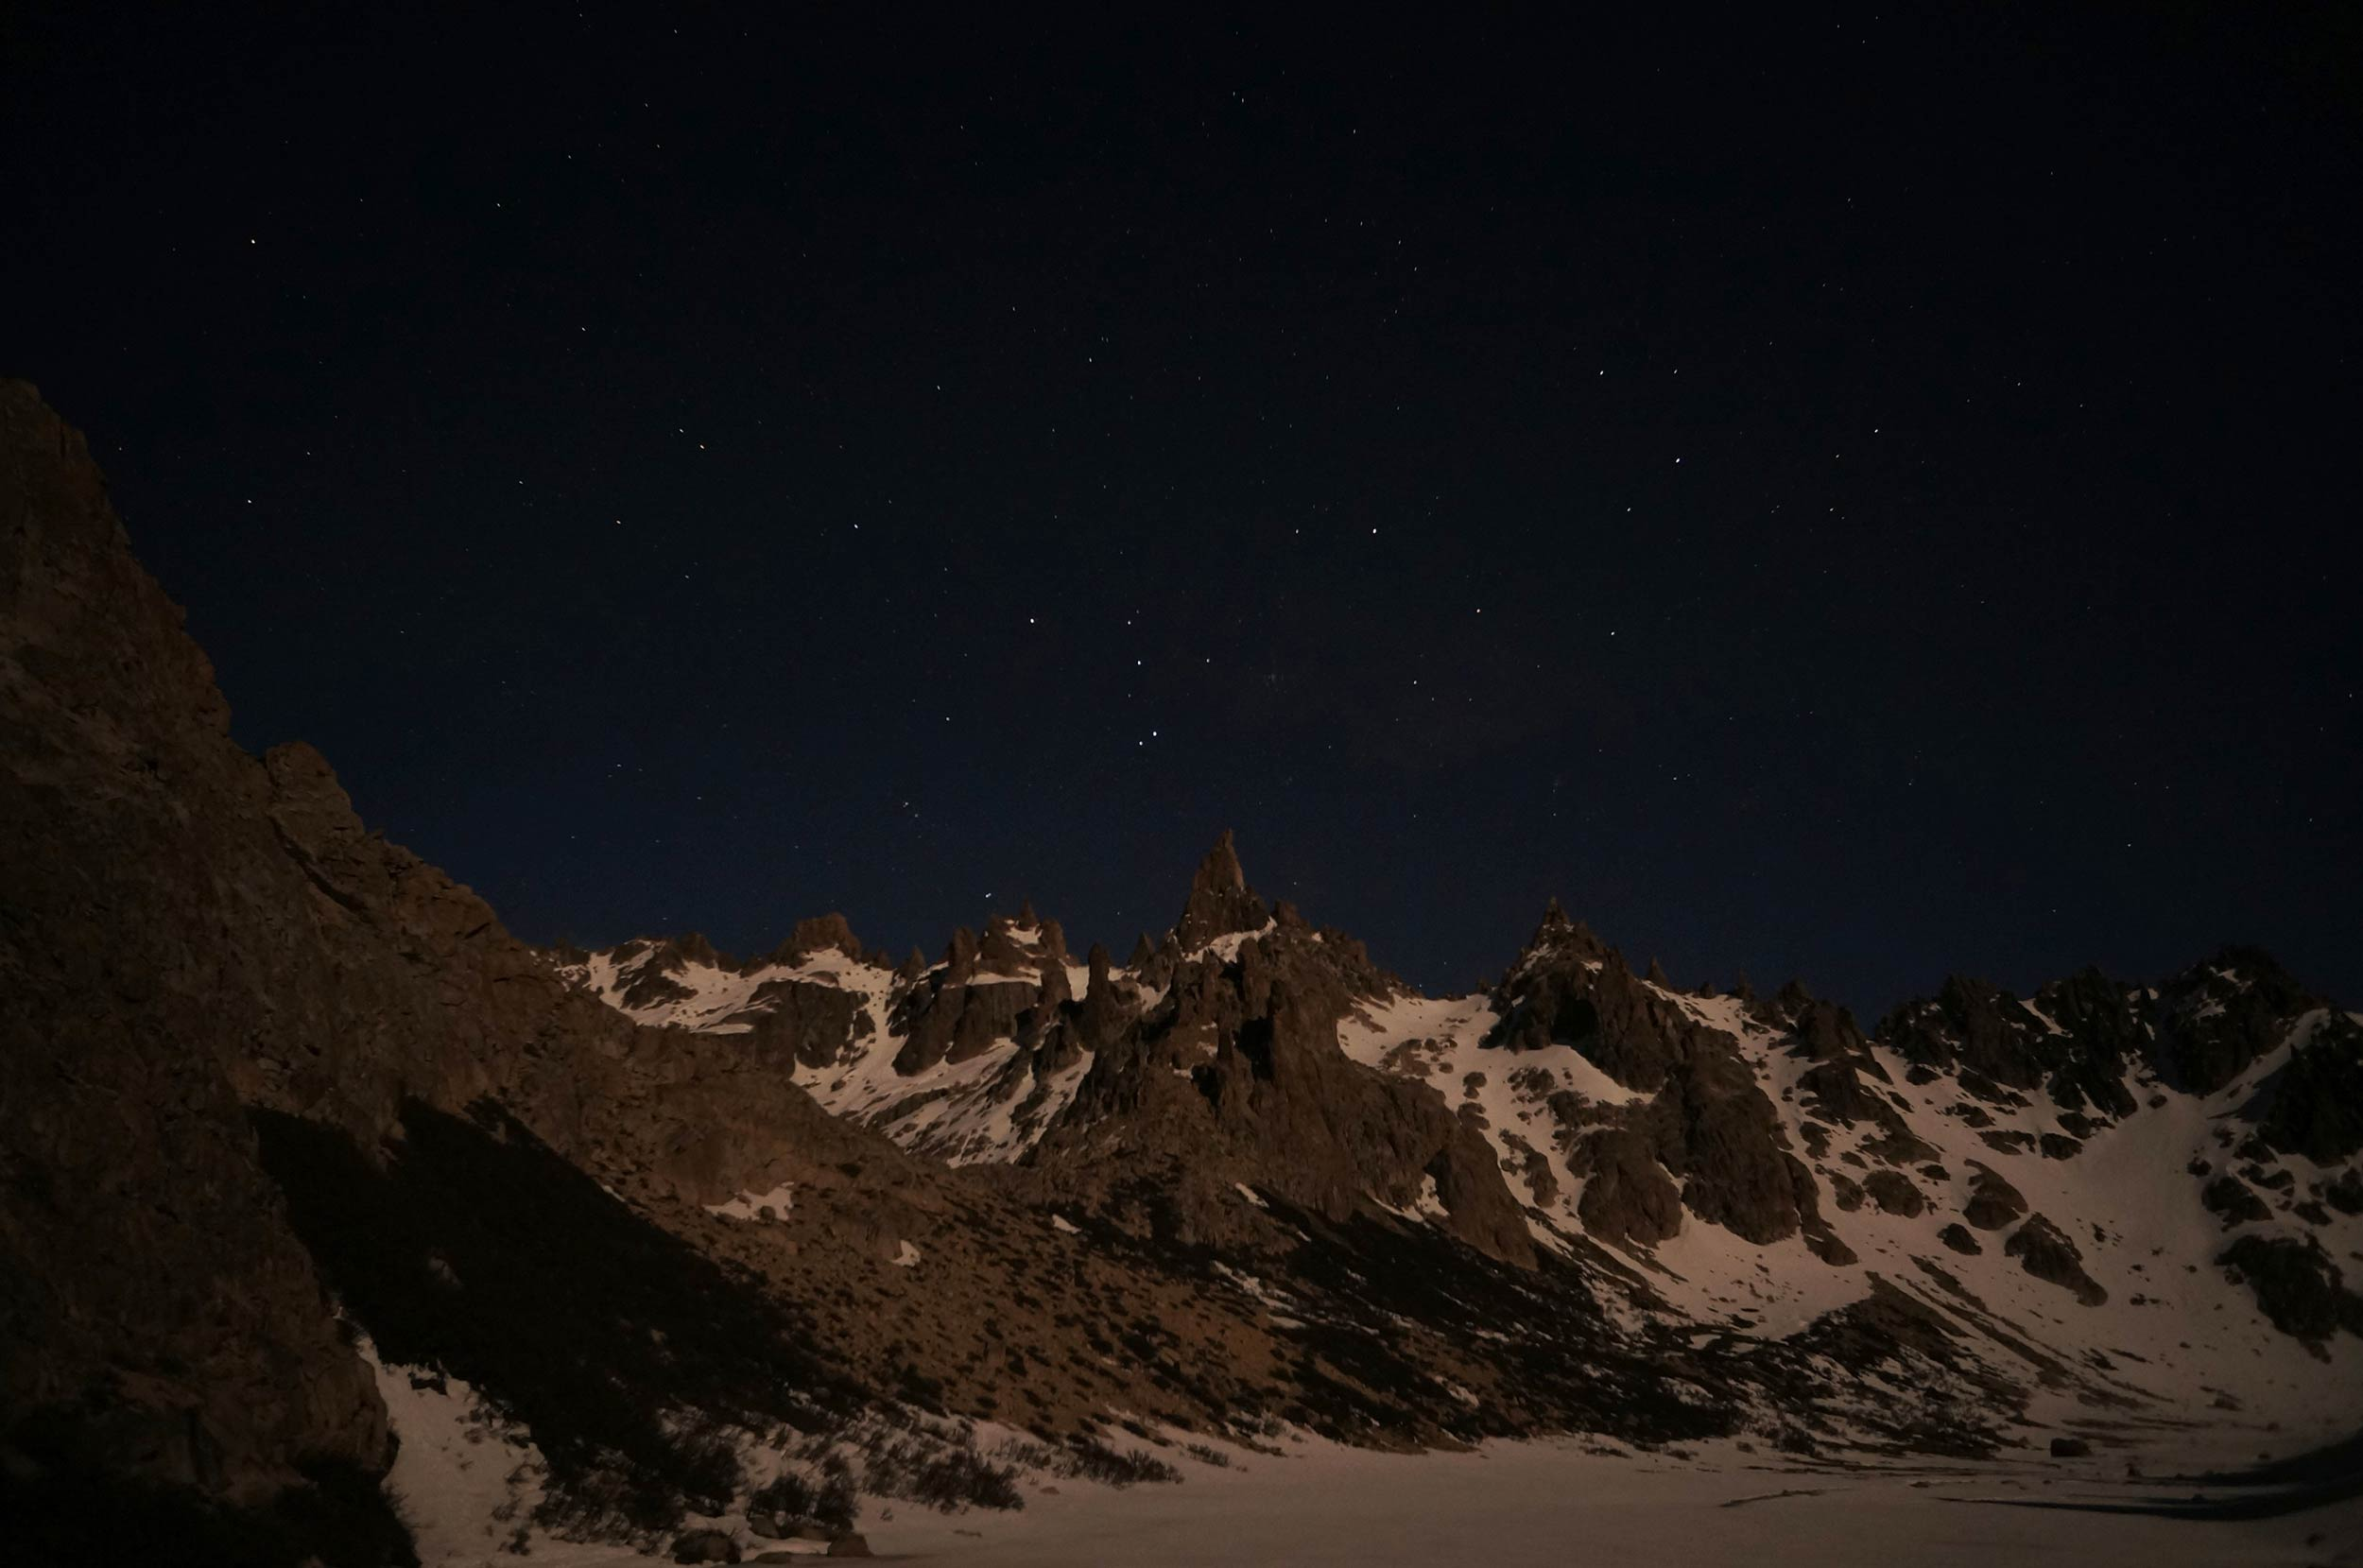 refugio_frey_night_stars.jpg